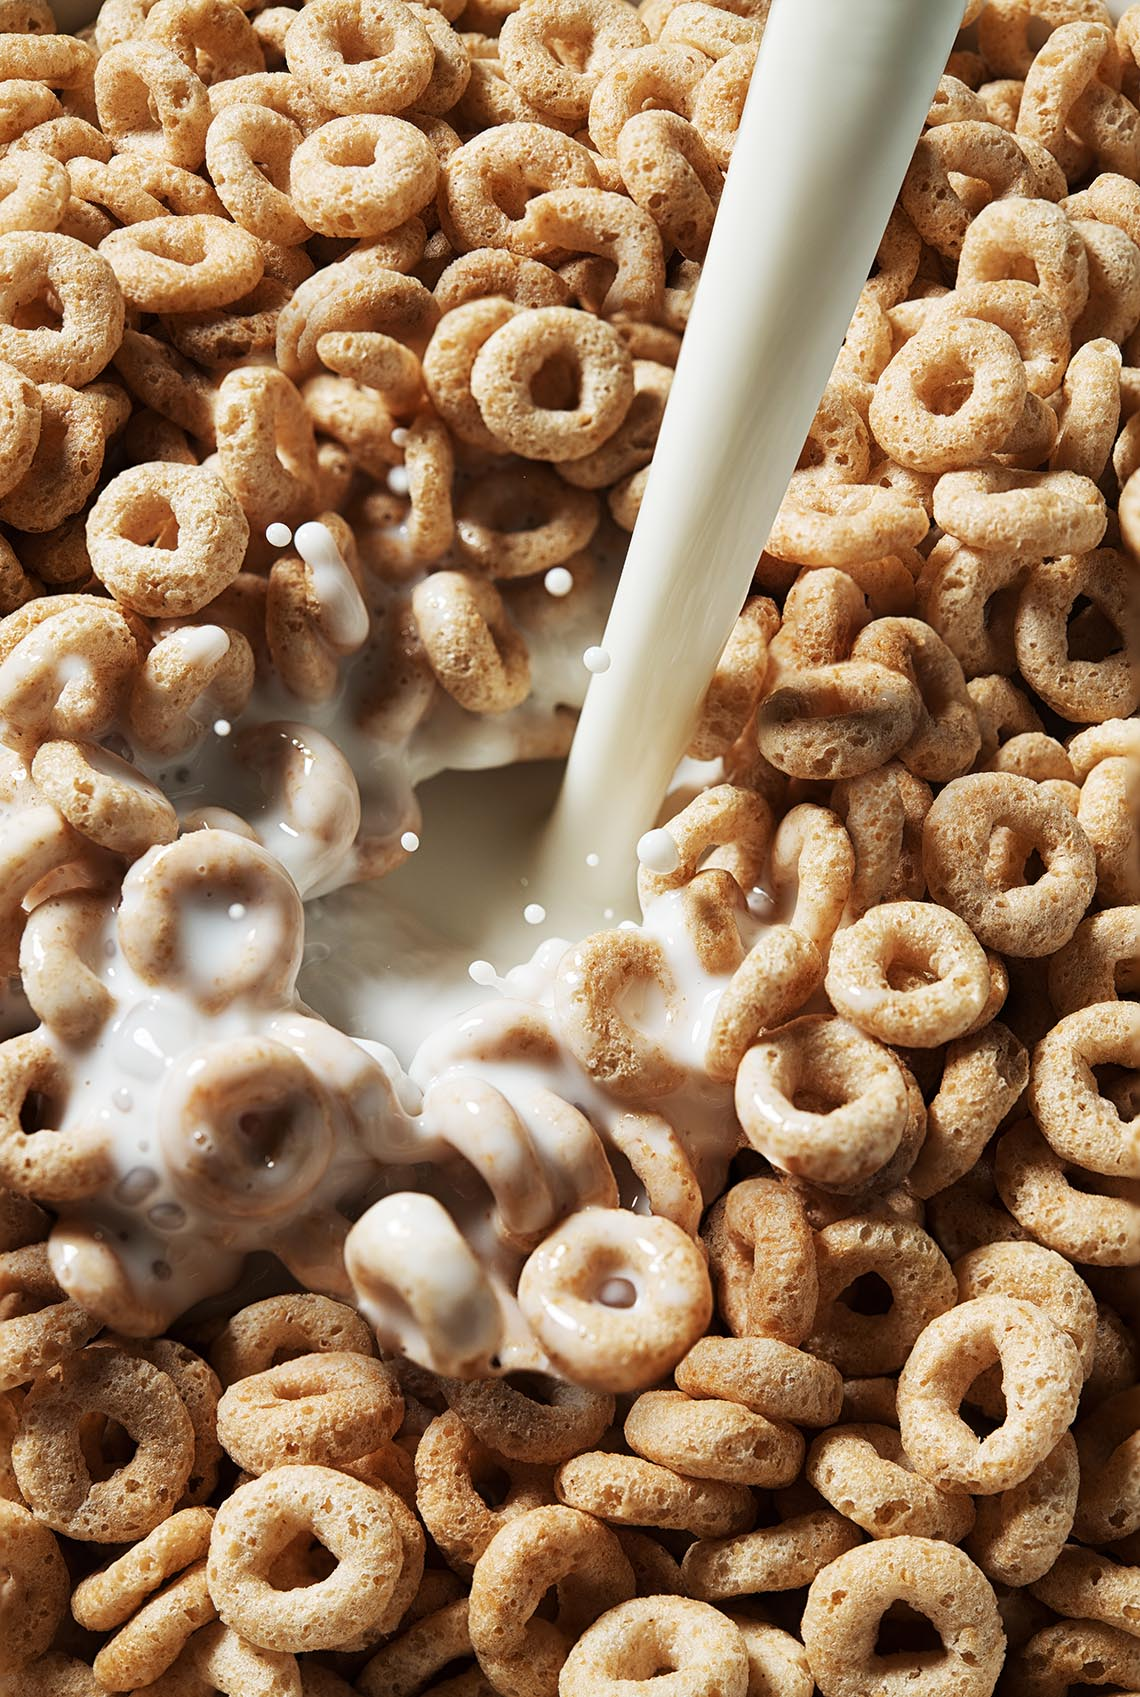 New-york-food-studio-cereal-pour